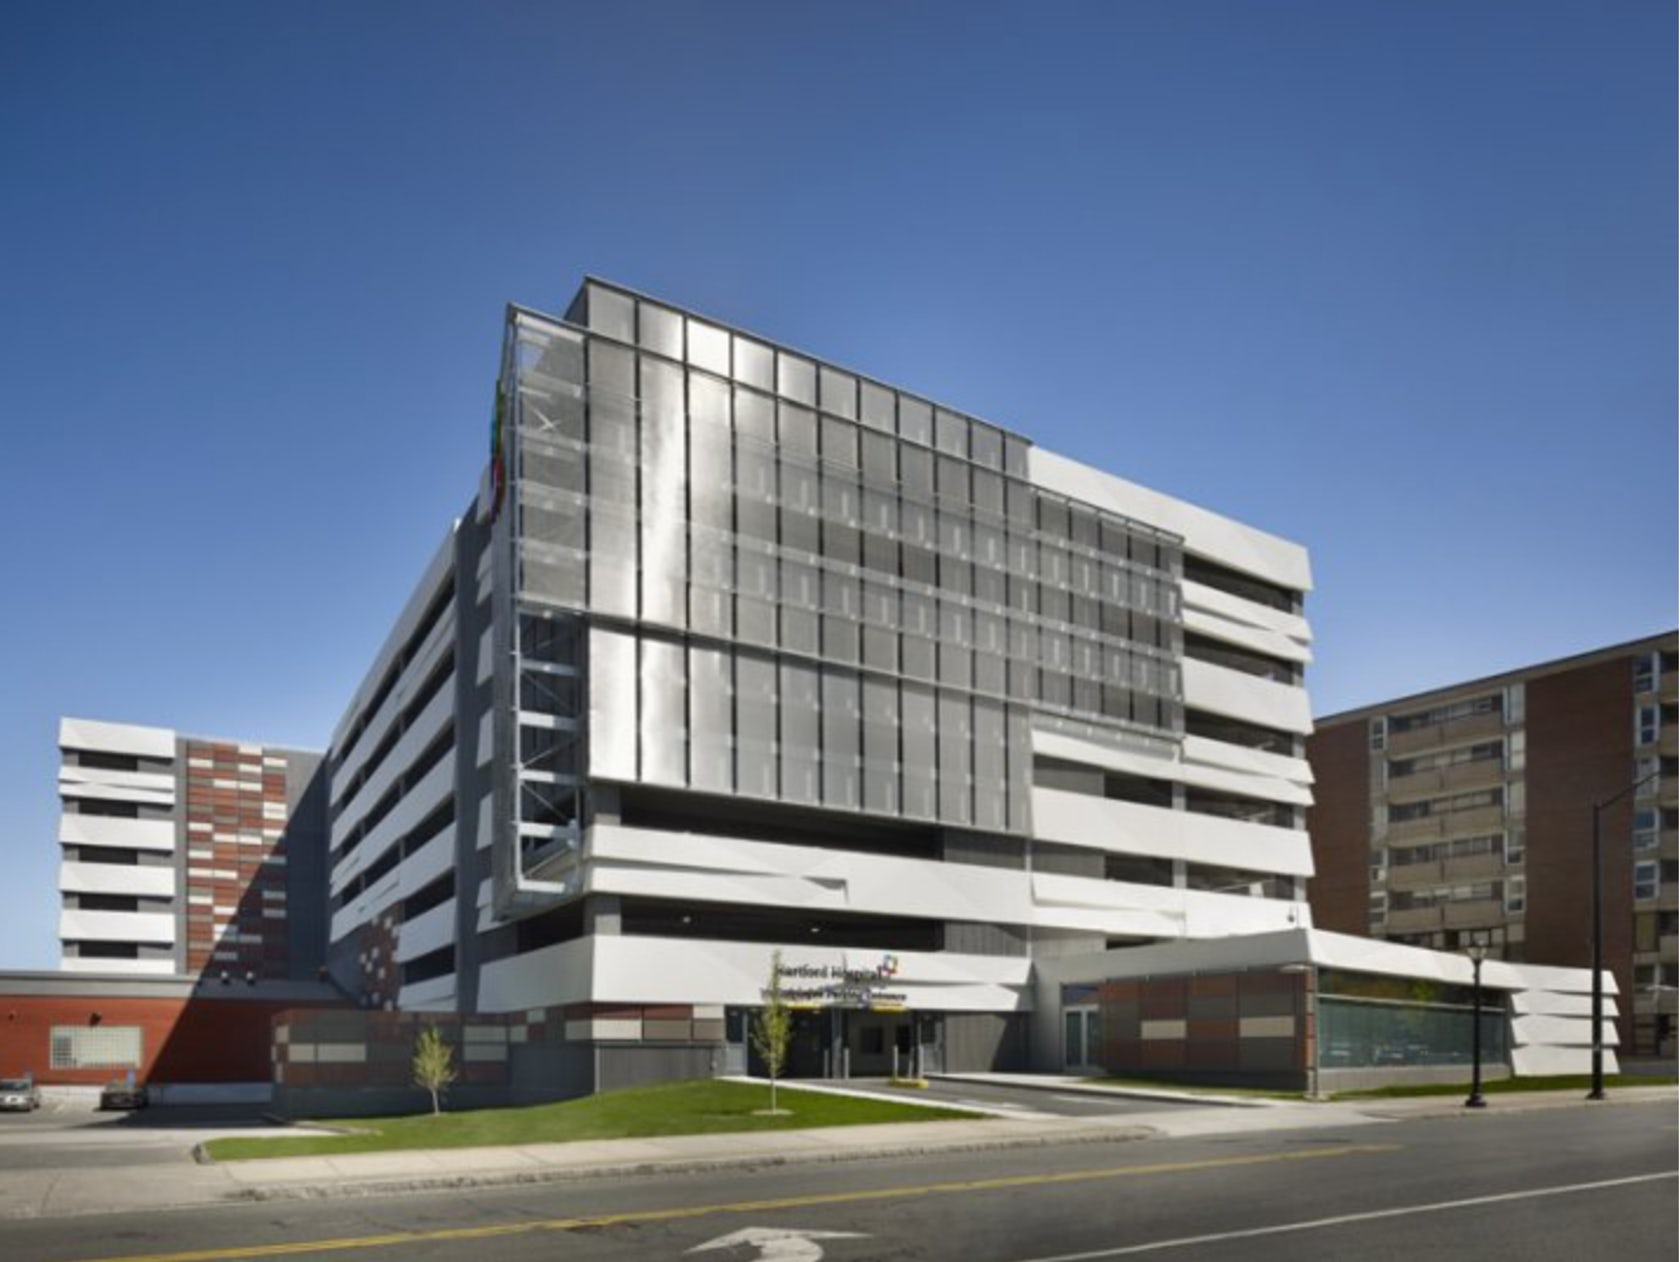 Hartford hospital parking garage architizer